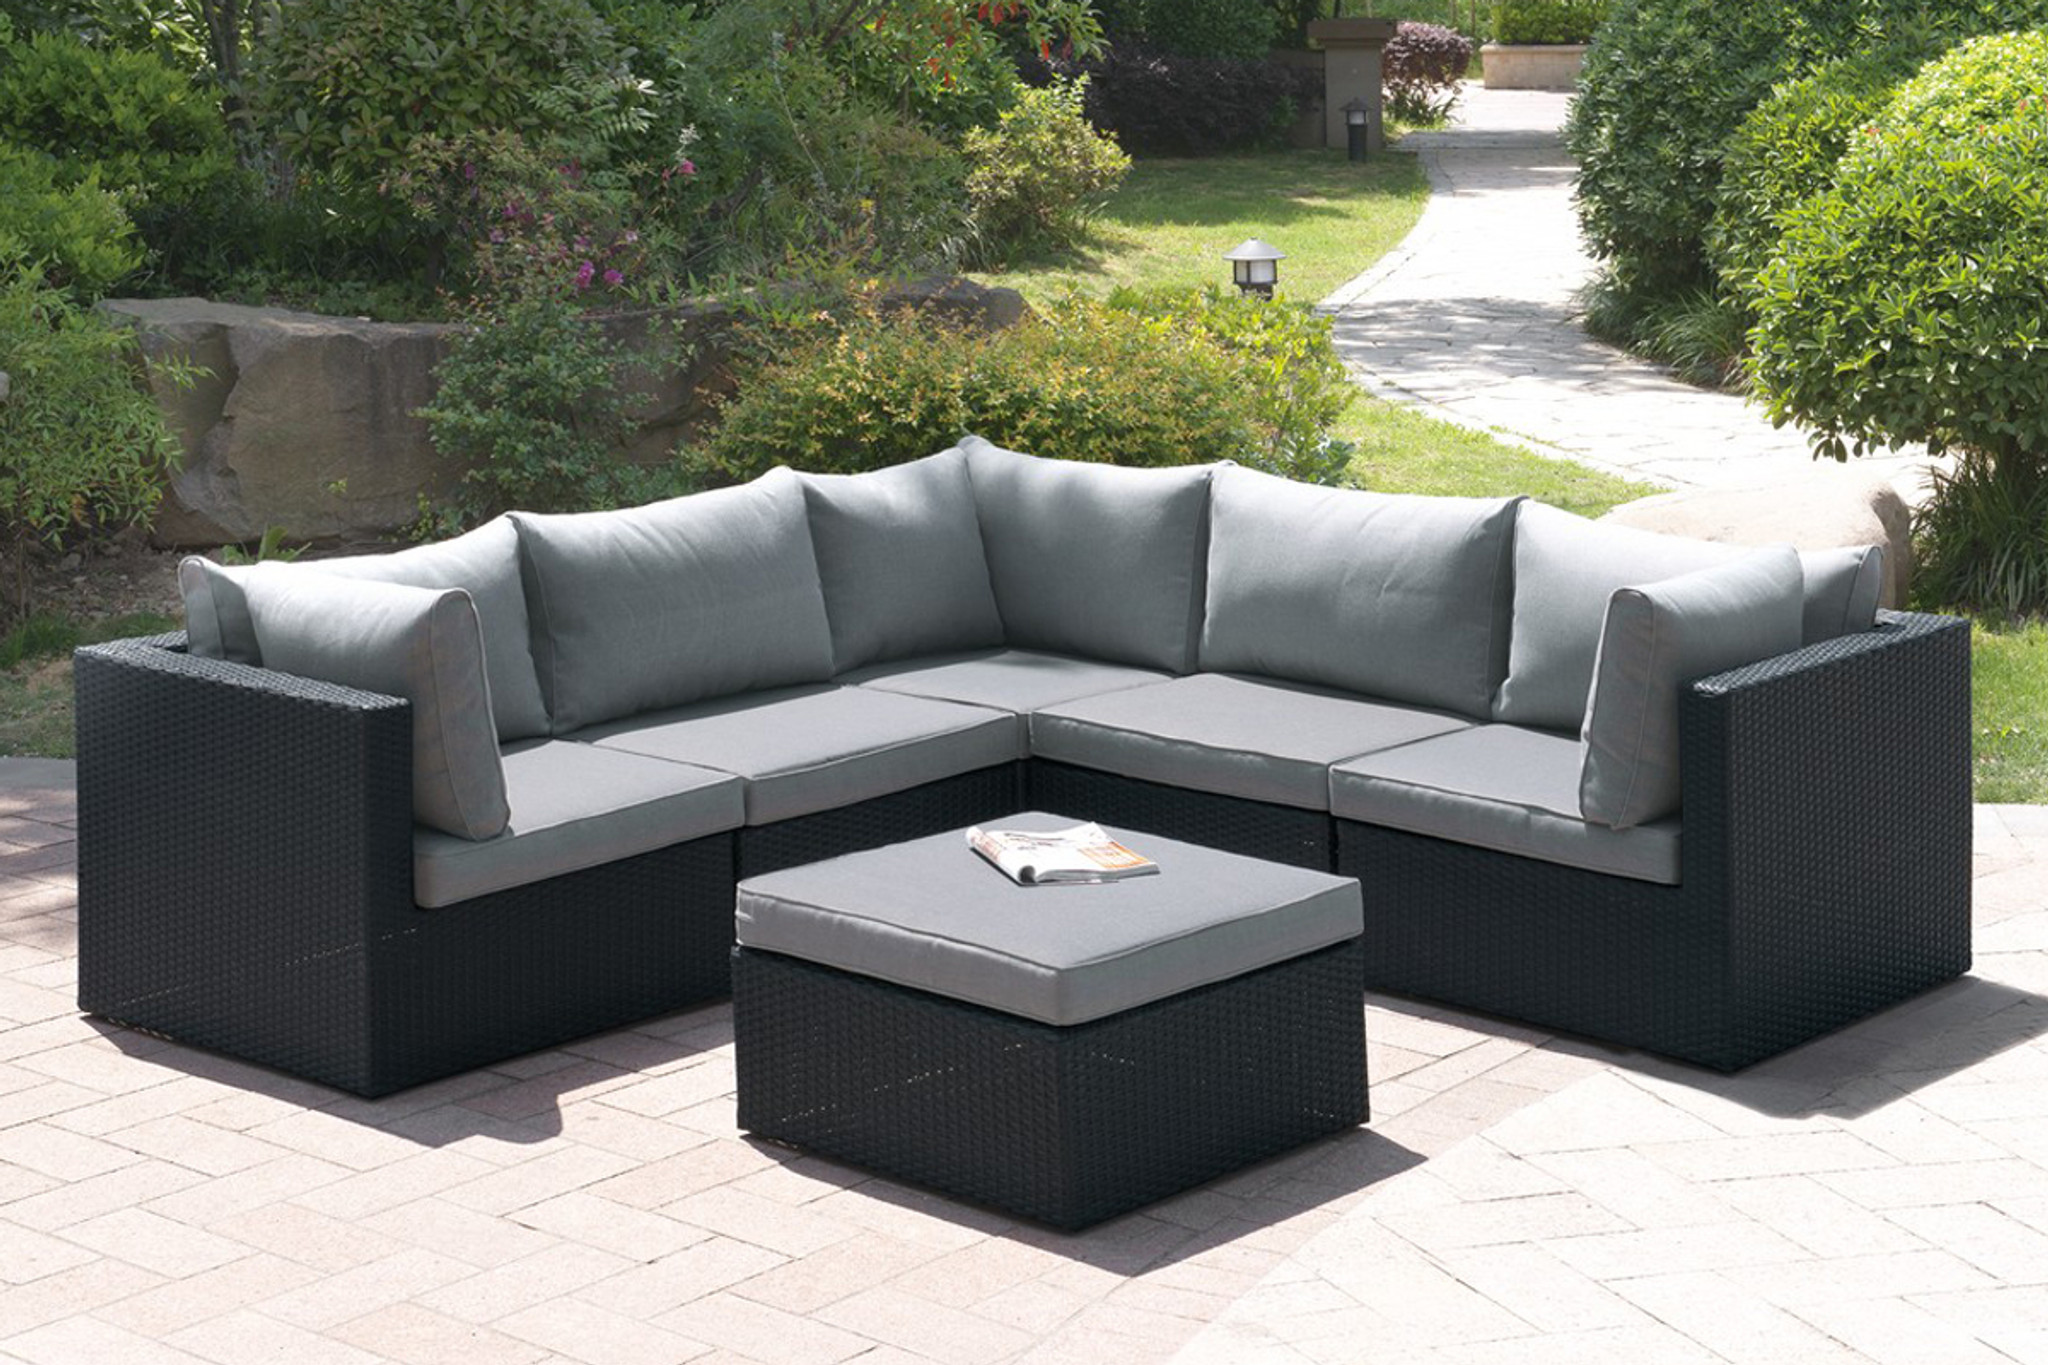 KASSA MALL HOME FURNITURE   407   6PC OUTDOOR PATIO SOFA SET IN DARK BROWN  RESIN WICKER FINISH AND GREY SEAT CUSHIONS